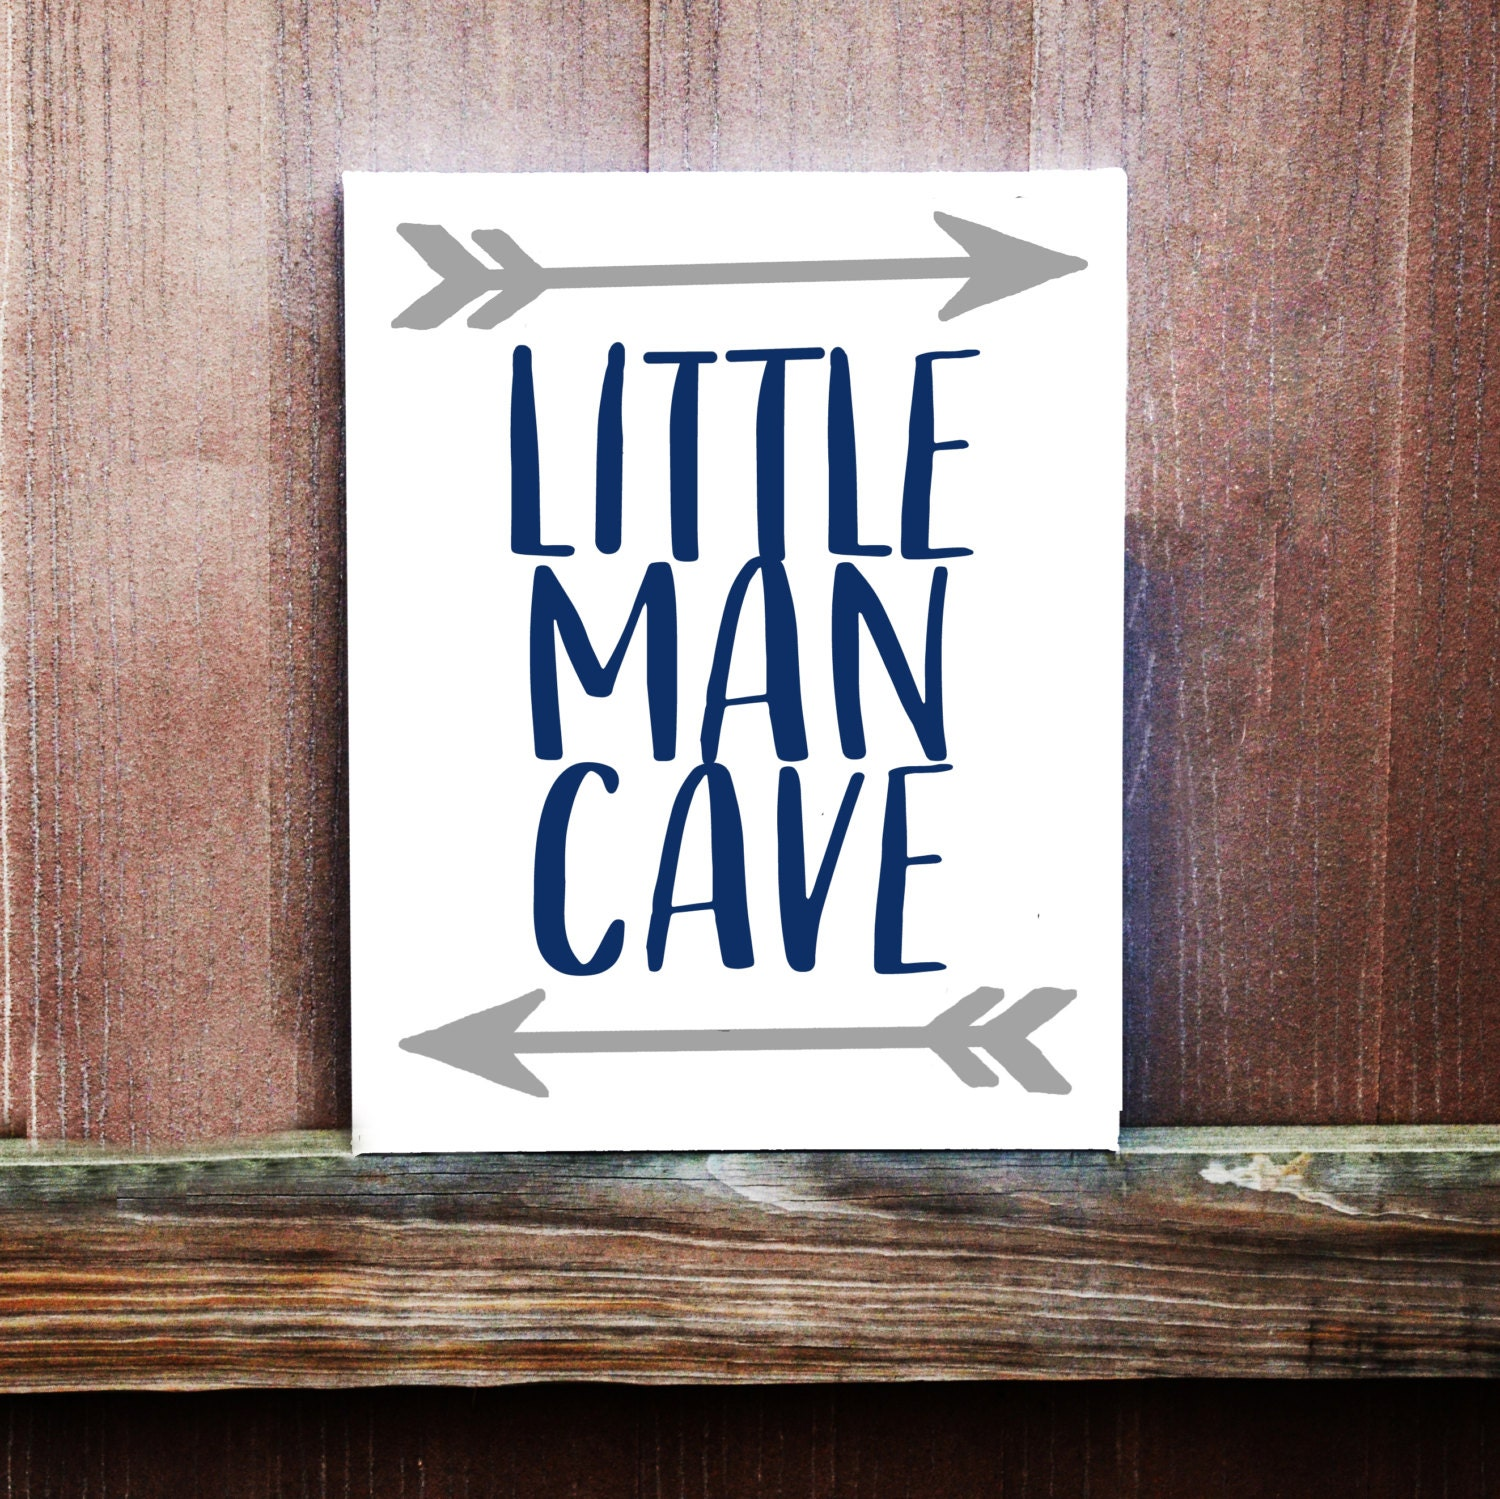 Man Cave Decor Etsy : Little man cave sign baby boy nursery decor hand